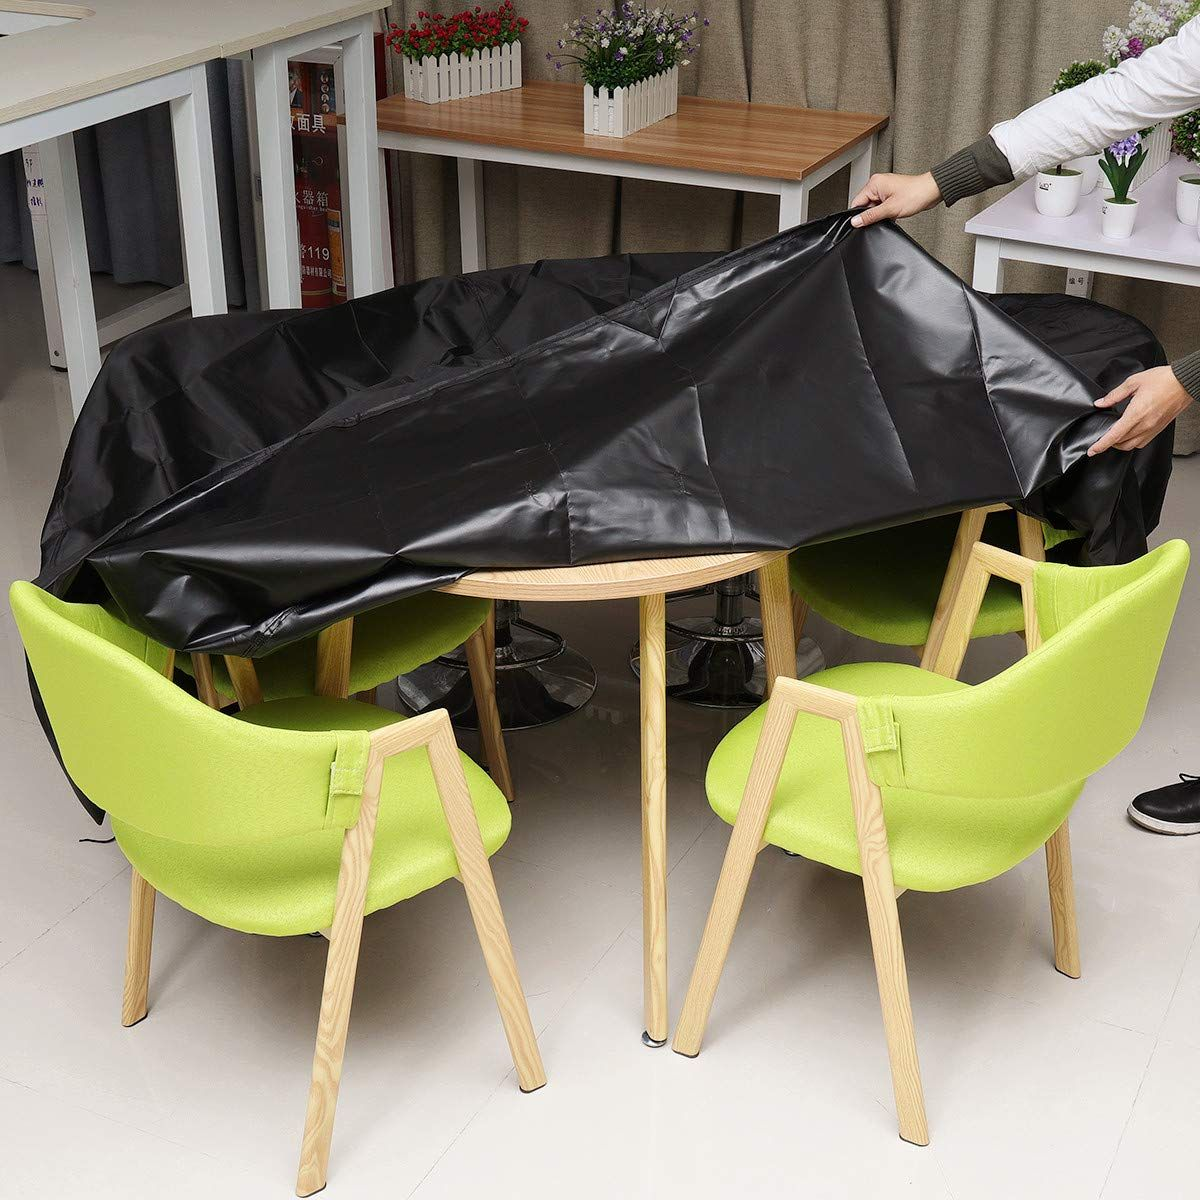 Amazon Com King Do Way Patio Furniture Covers Round Patio Table And Chair Cover Oval With Durable And Waterproof Uv Resistant Fabric 420d Black Xlarge 96